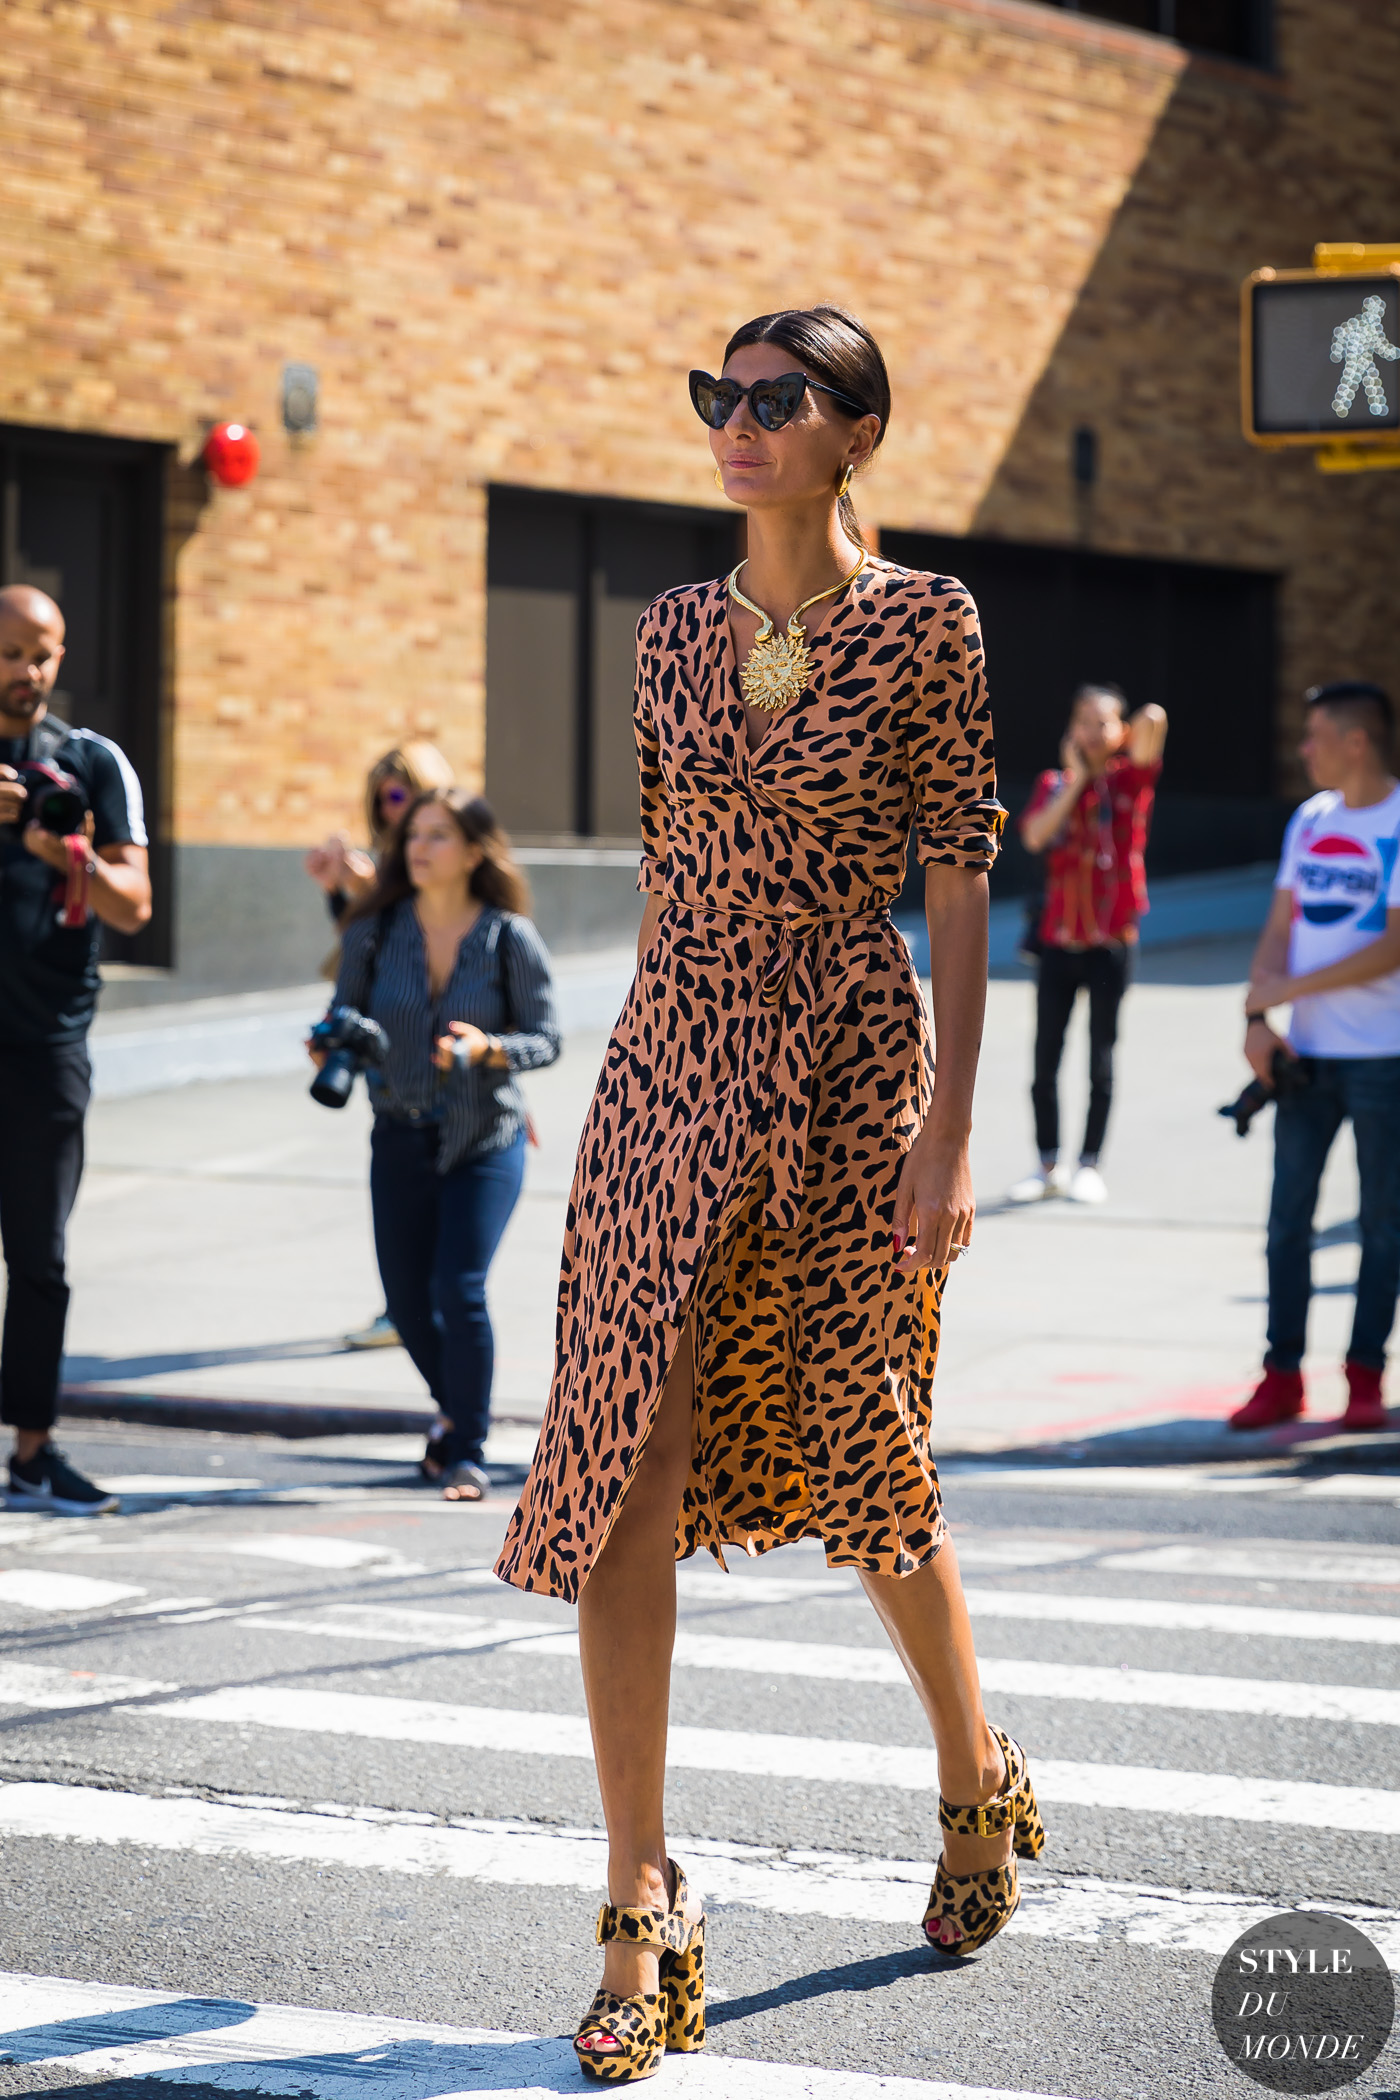 Giovanna Battaglia Engelbert by STYLEDUMONDE Street Style Fashion Photography_48A8331